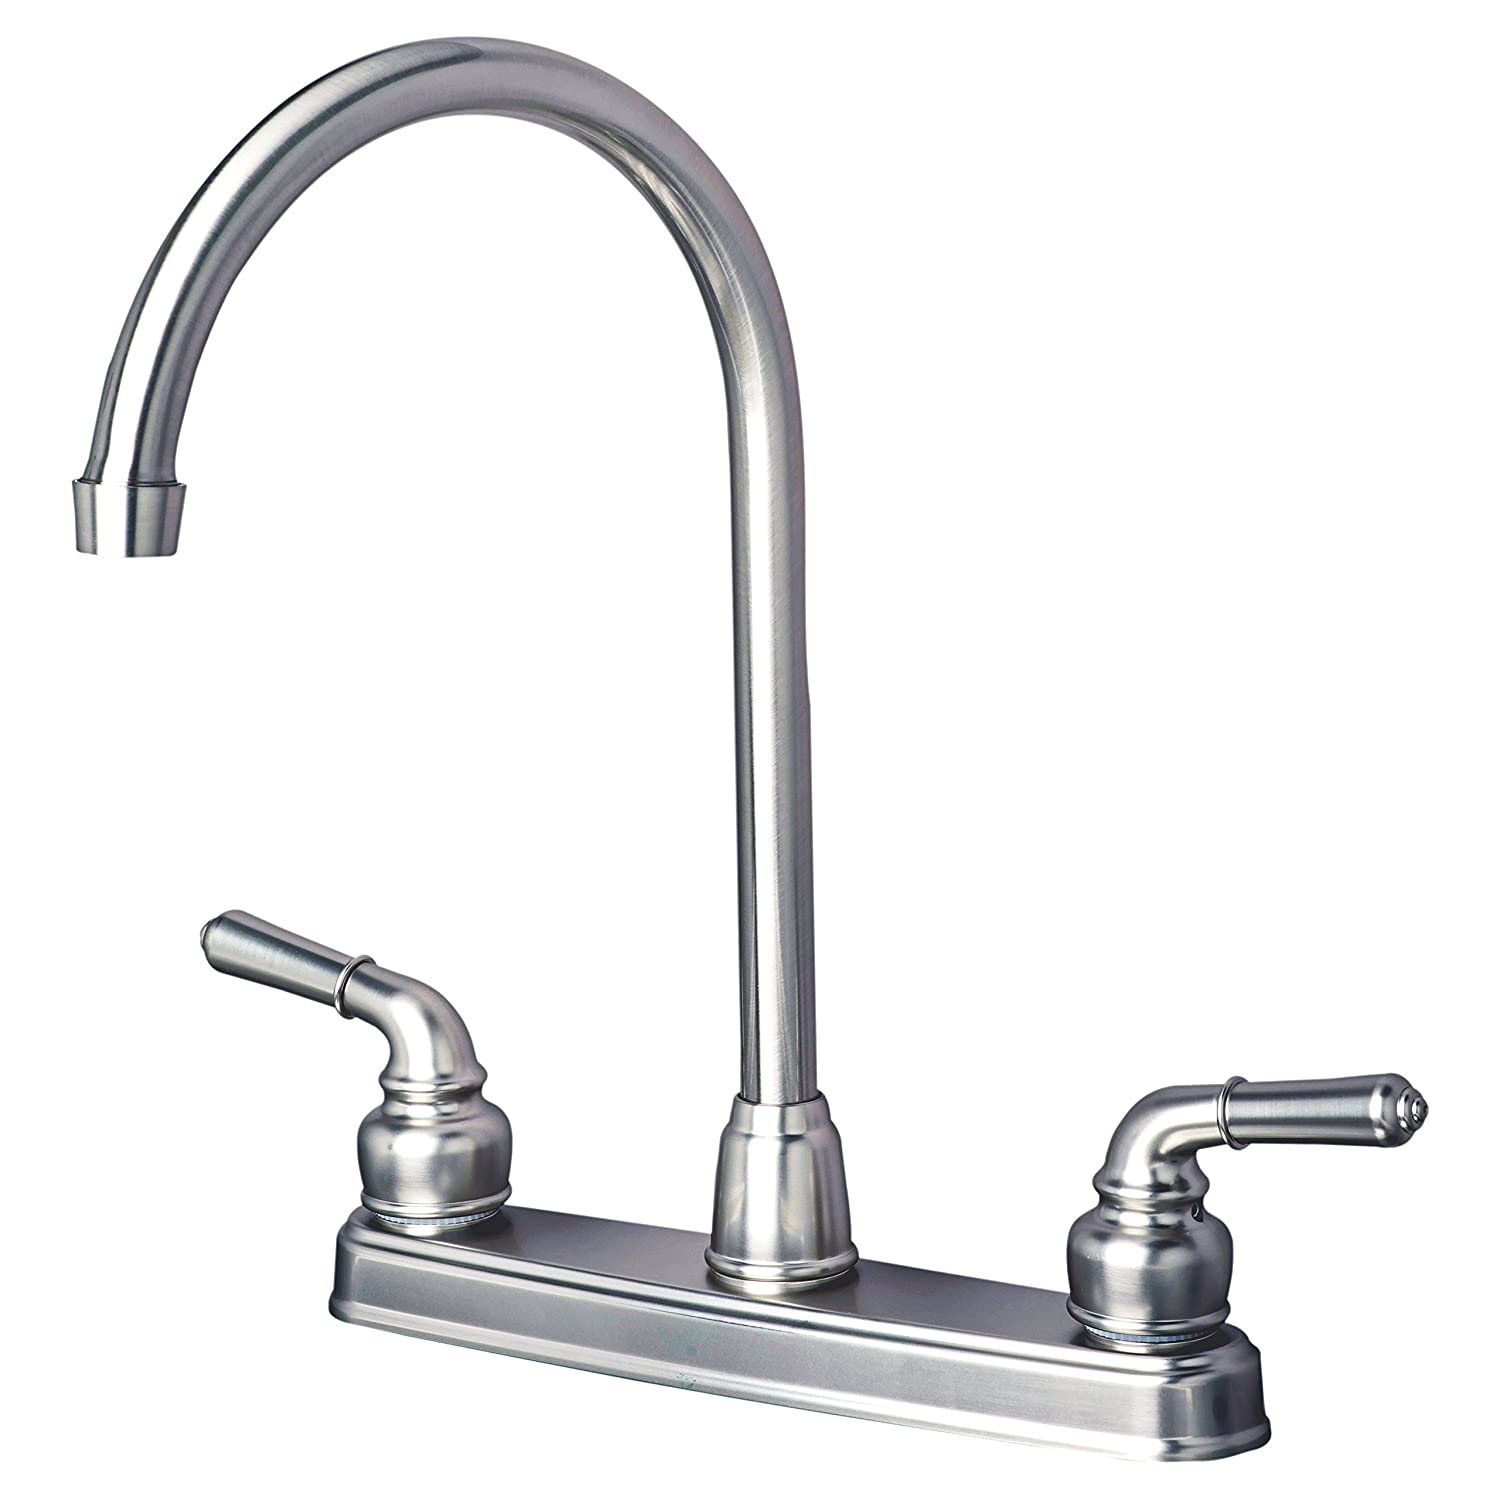 Builders Shoppe 1201SS RV Mobile Home Non-Metallic High Arc Swivel Kitchen Sink Faucet Brushed Nickel Finish